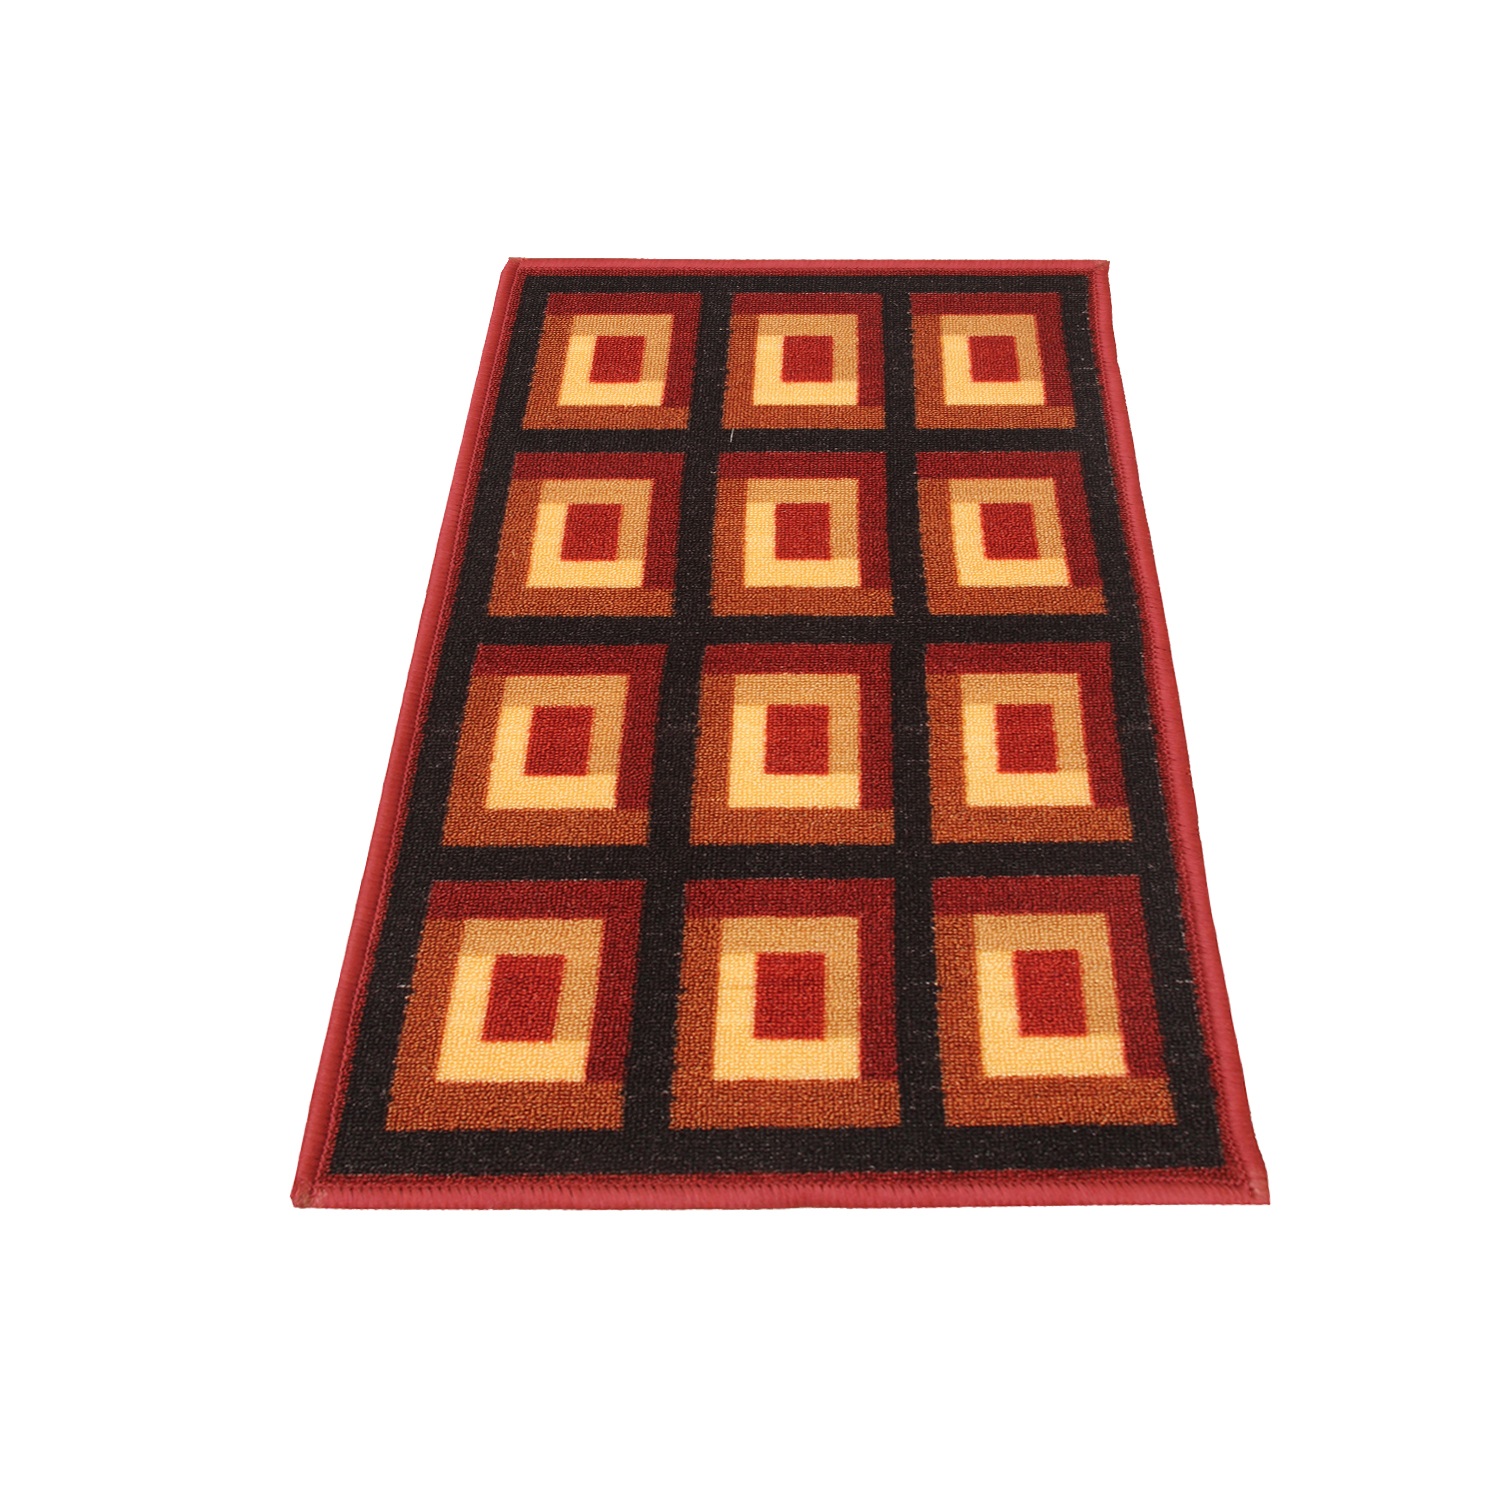 Kuber Industries Cotton Bed Side Runner (Maroon) set of 1 Pc